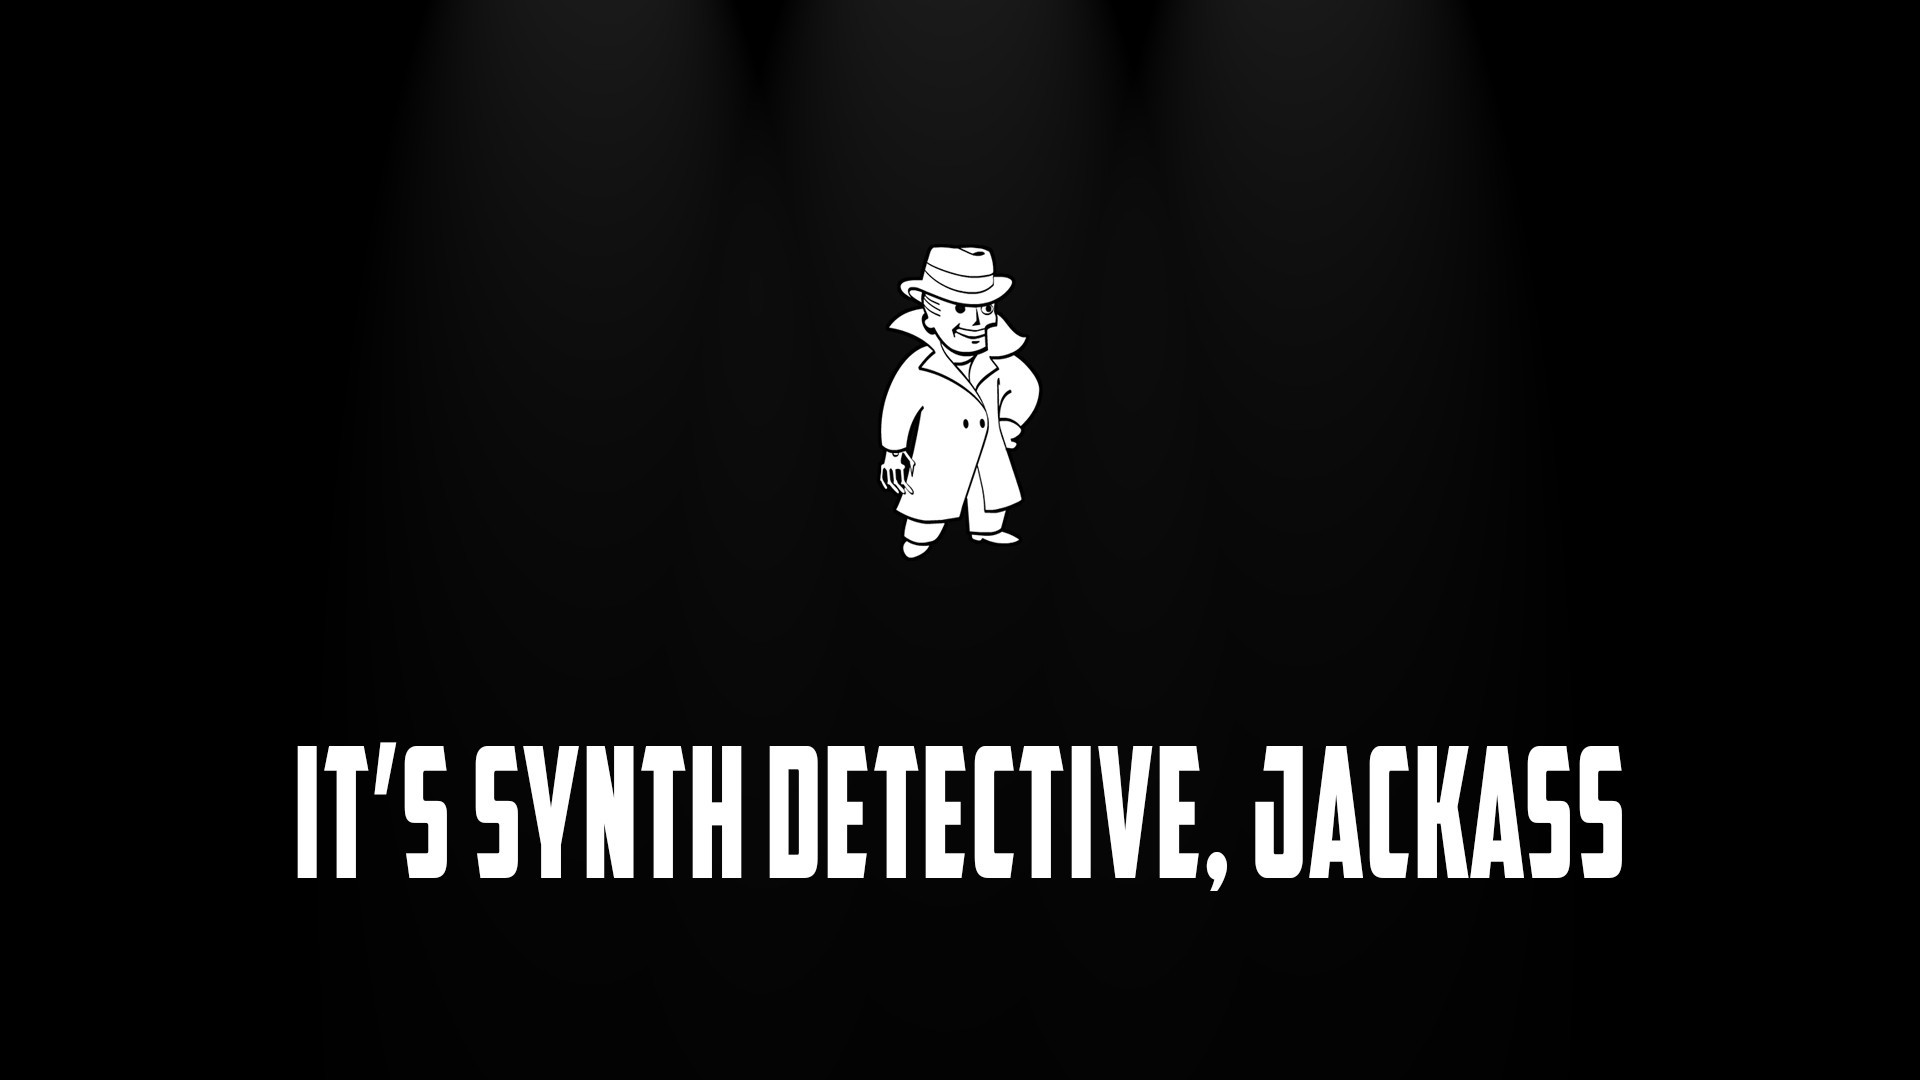 1920x1080 Synth Detective Wallpaper,Games Wallpapers, Igames Wallpapers, Video Games  Wallpapers, Video Games Wallpapers, Xgames Wallpapers, Hunger Games  Wallpapers, ...